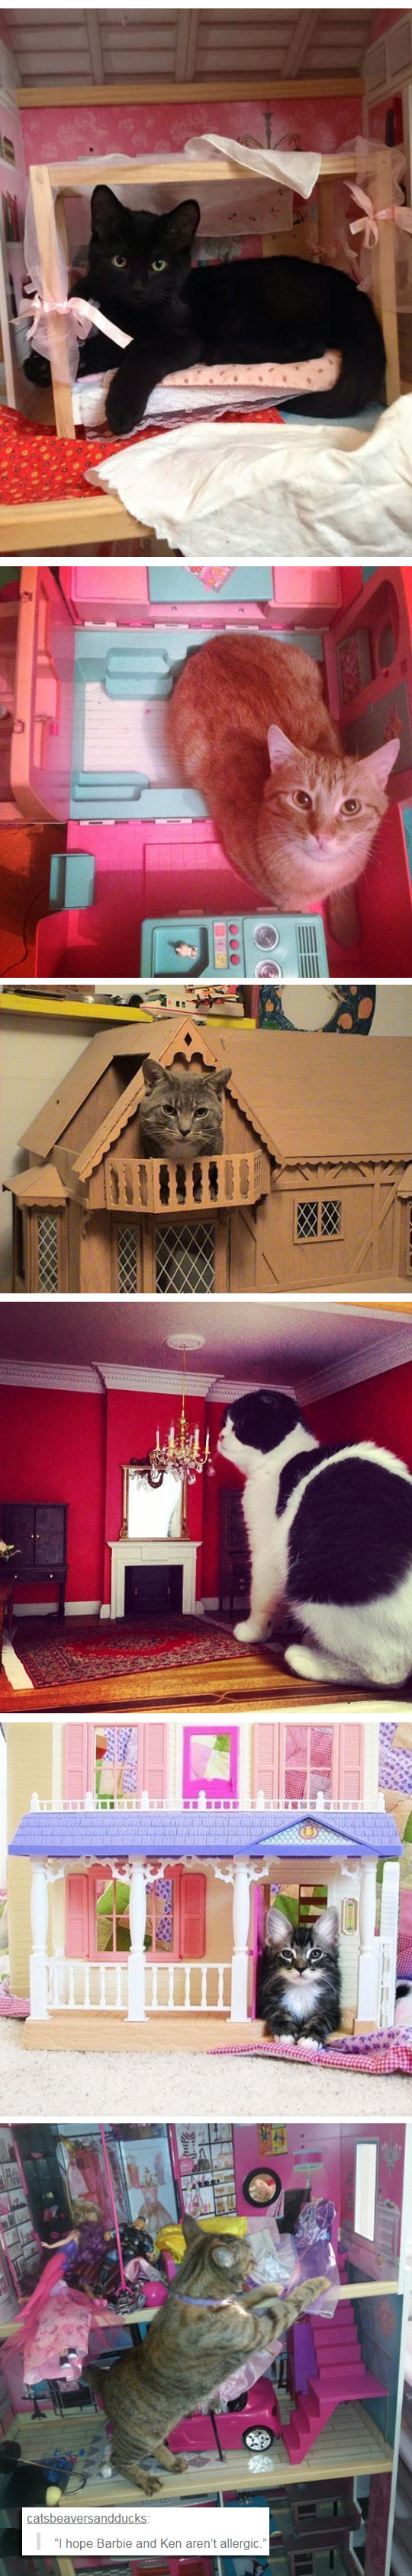 funny-cat-tiny-toy-house-bed